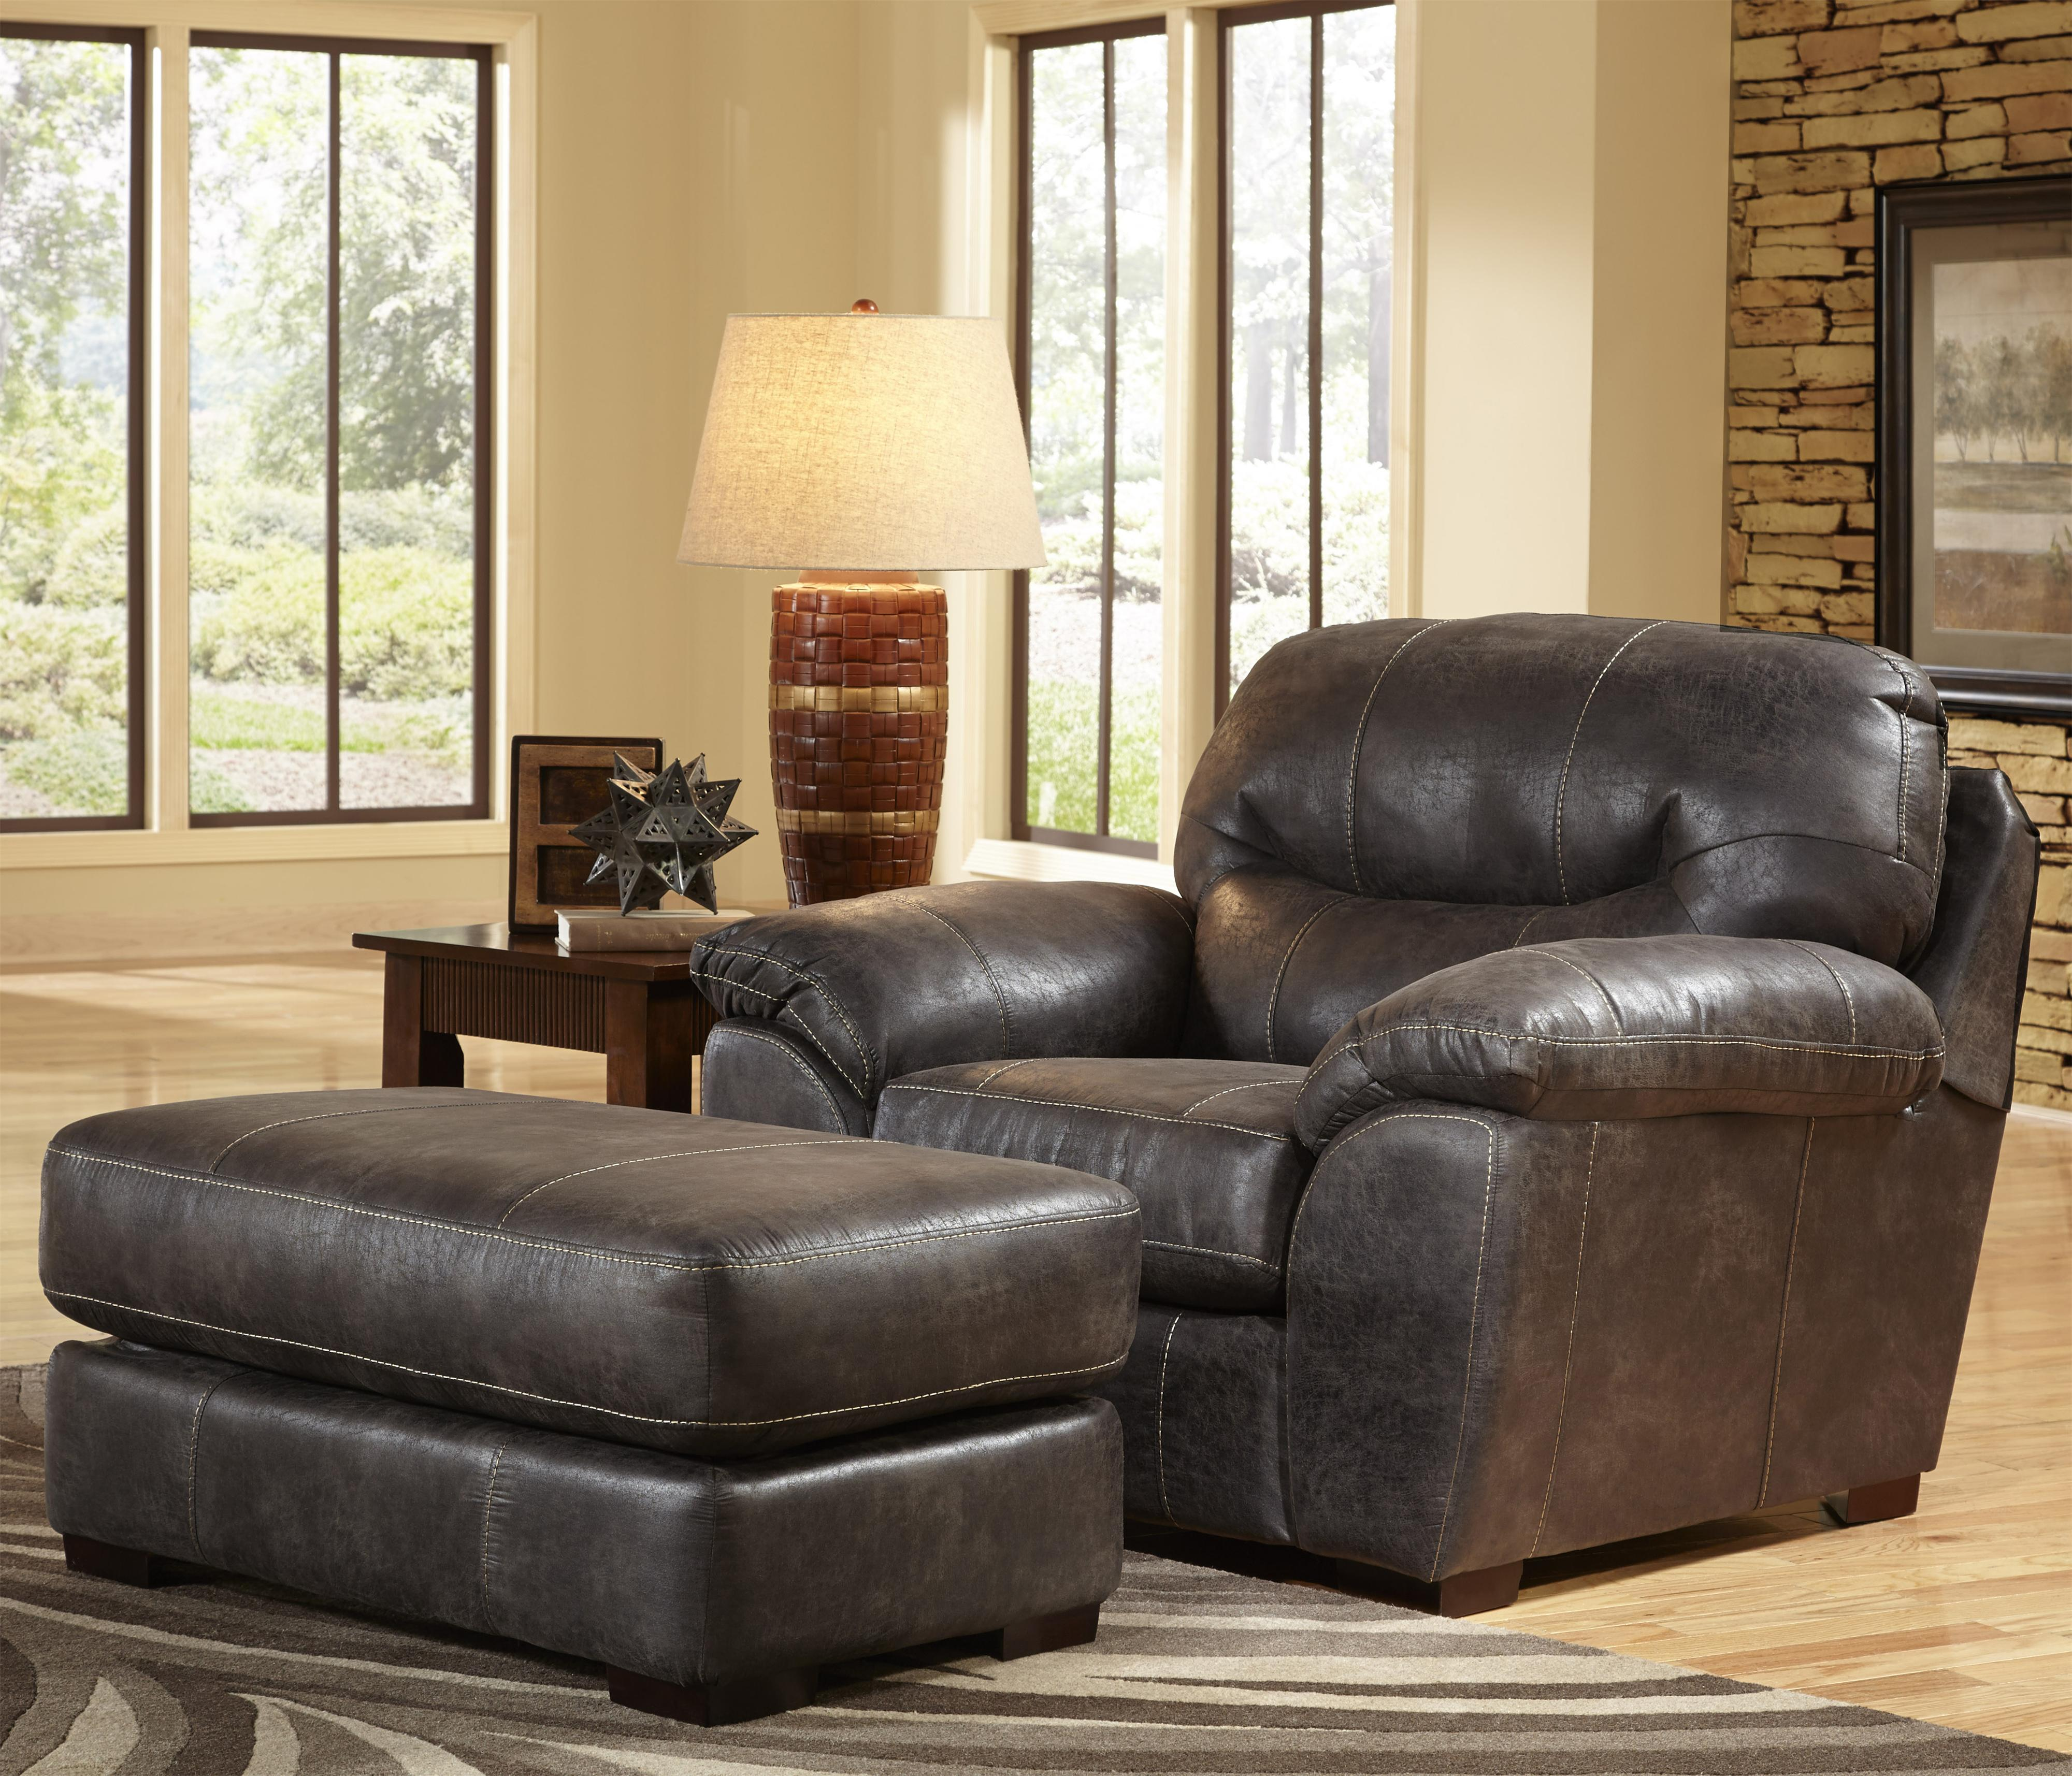 Chair and a half and ottoman set for living rooms and family rooms